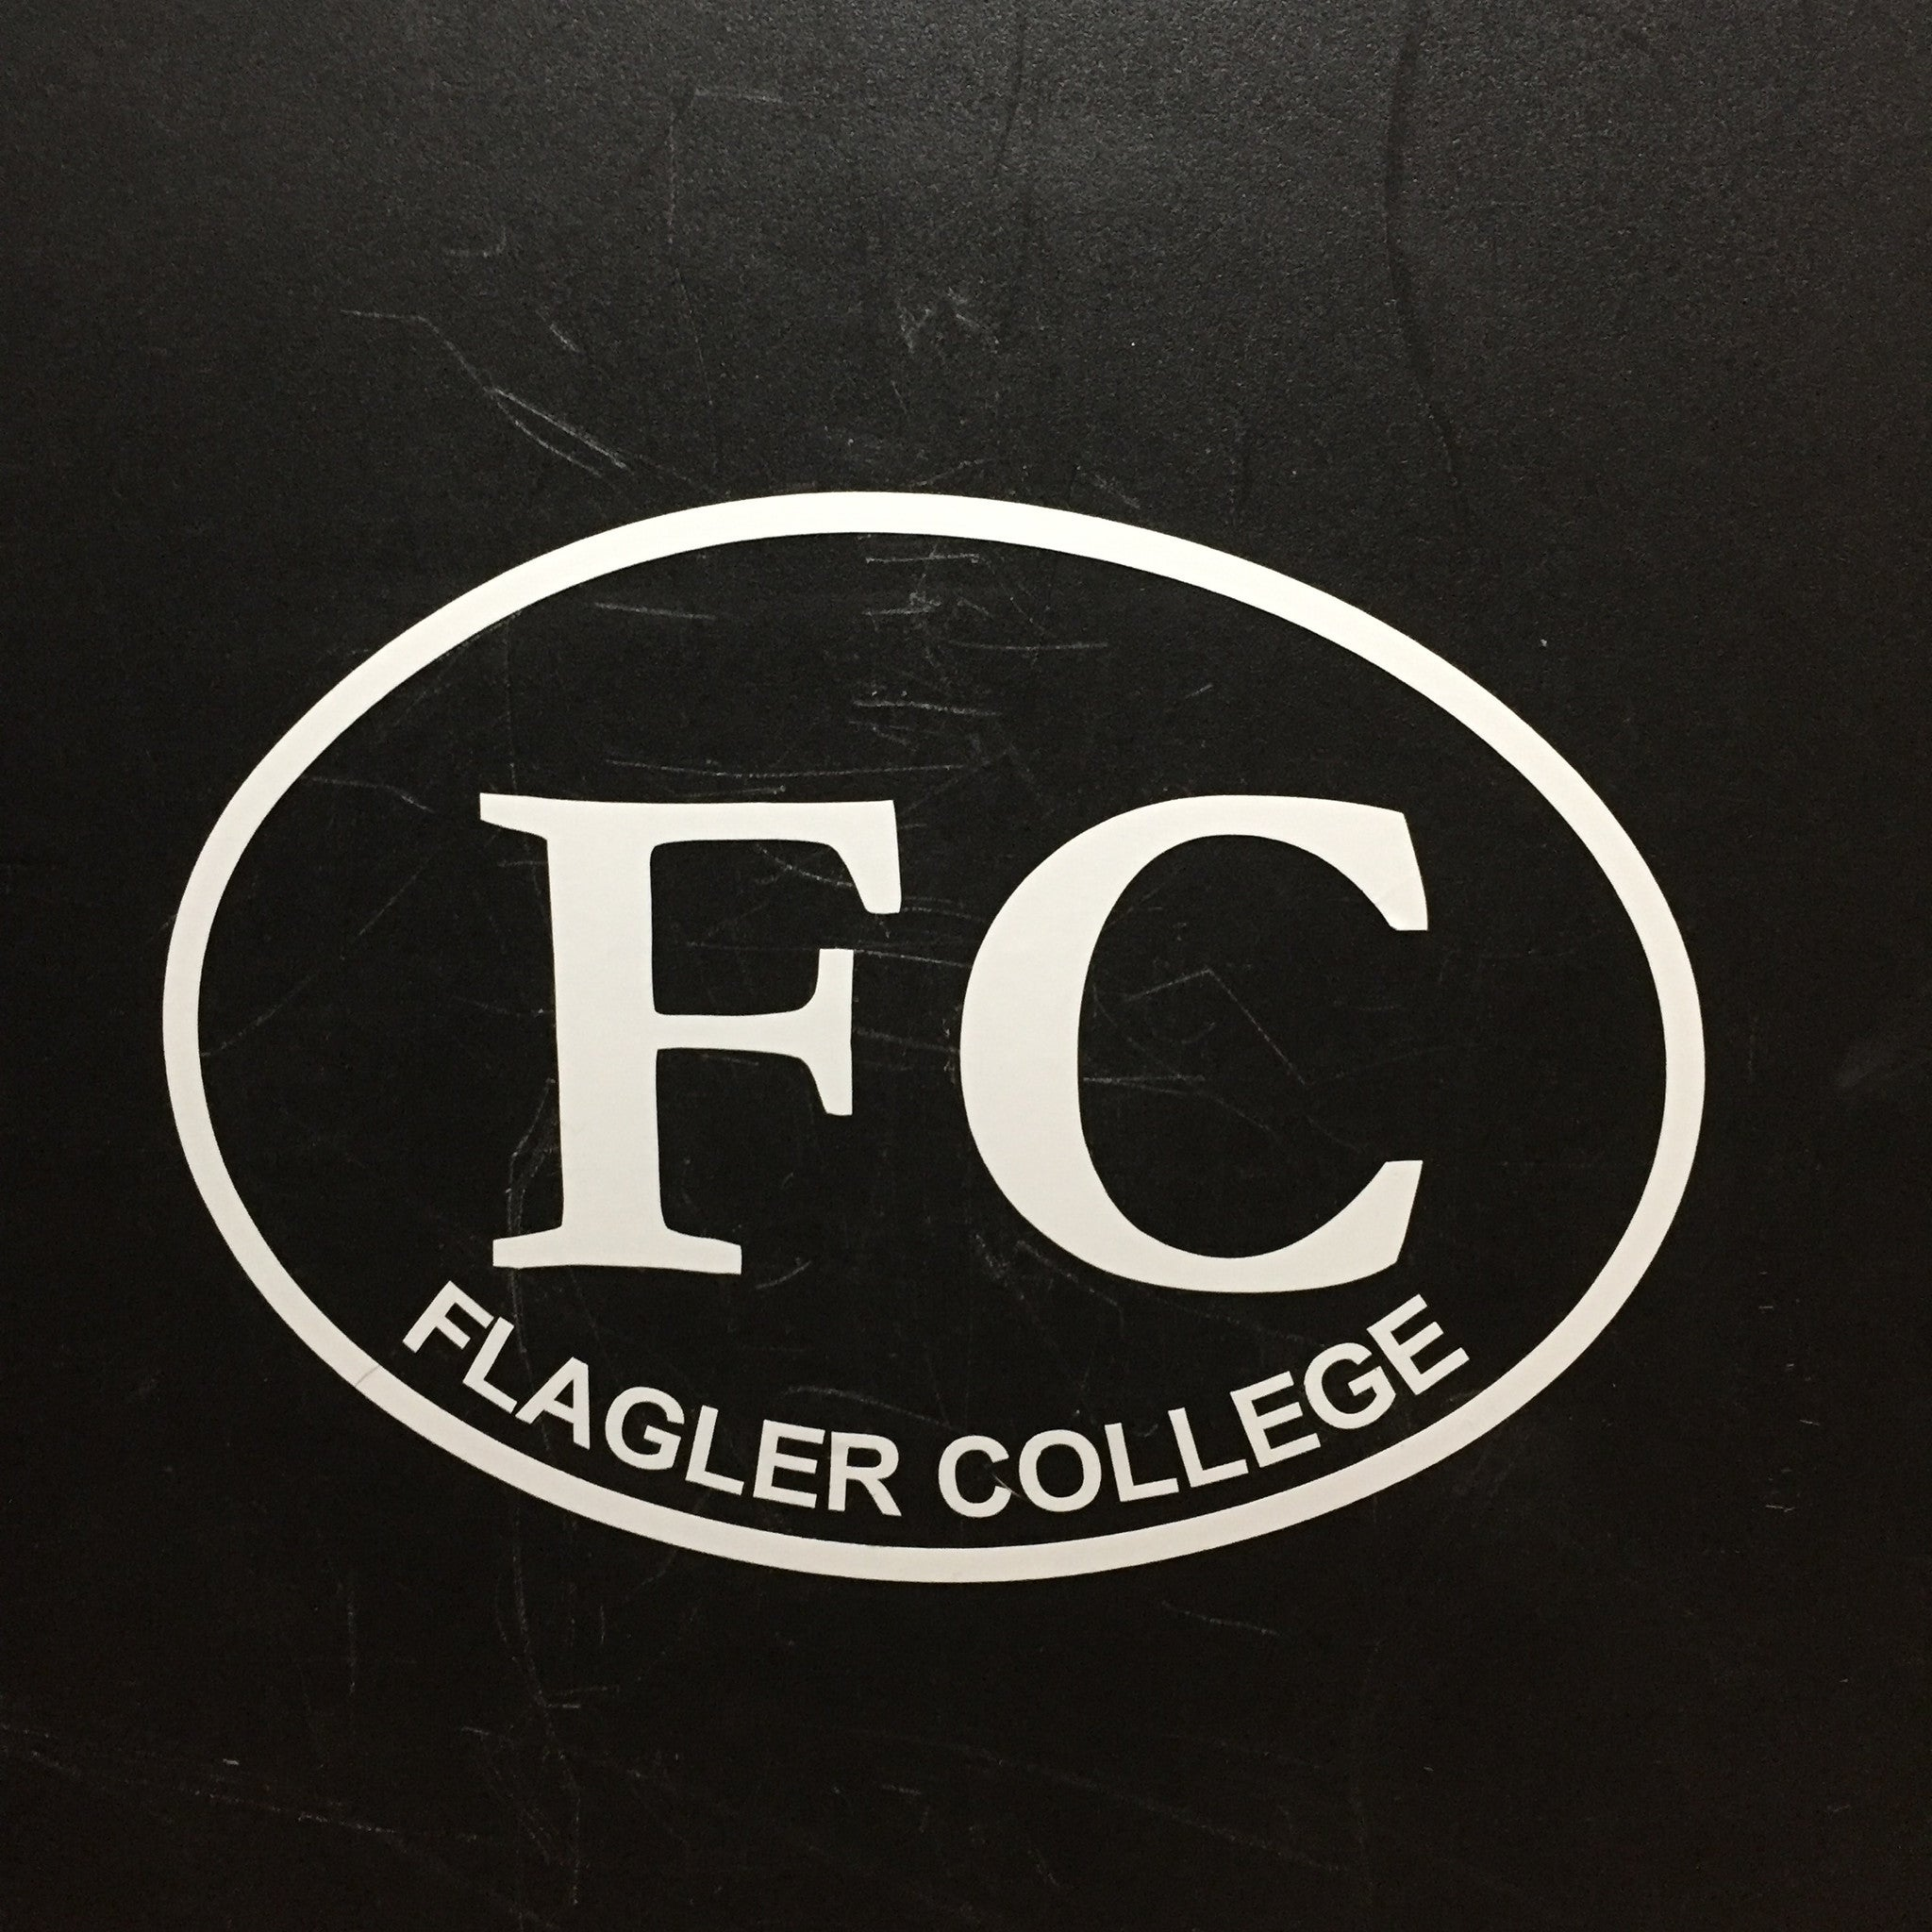 White oval decal with FC in the middle and Flagler College printed at the bottom